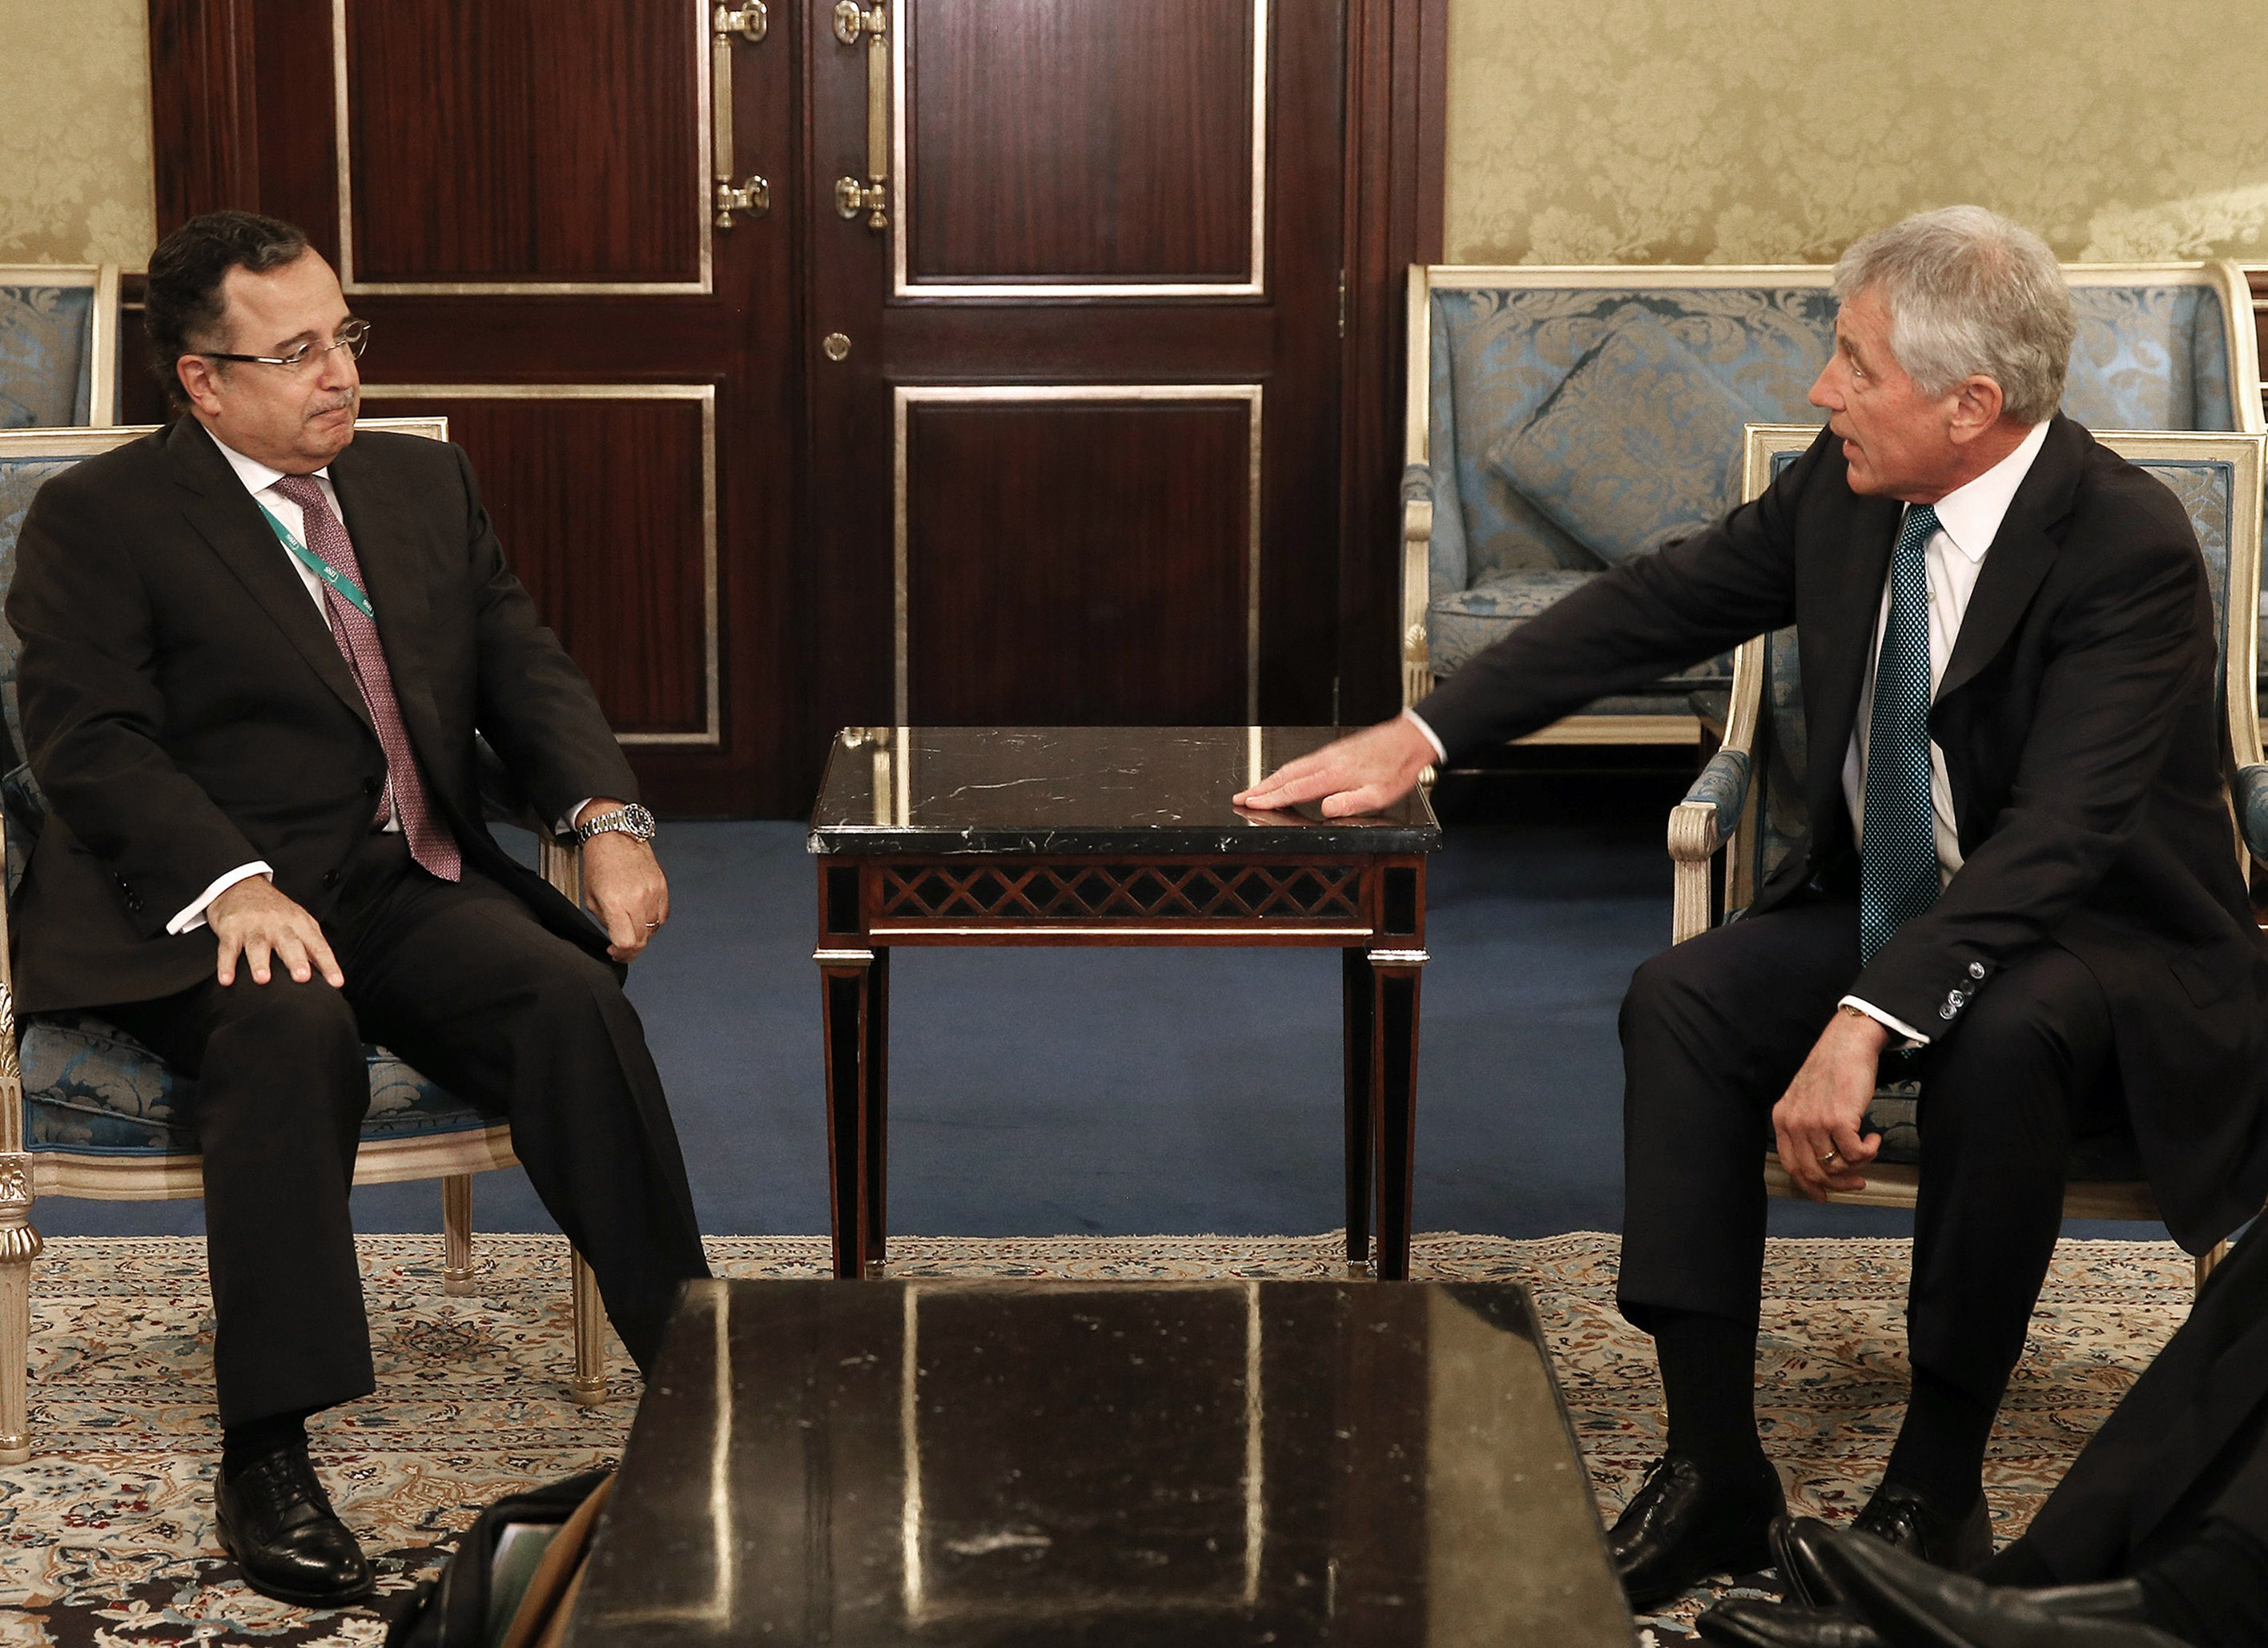 US Defence Secretary Chuck Hagel (R) meets with Egypt's Foreign Minister Nabil Fahmy during the 9th International Institute for Strategic Studies (IISS) Regional Security Summit in the Bahraini capital Manama on December 7, 2013.  (AFP PHOTO / POOL / MARK)